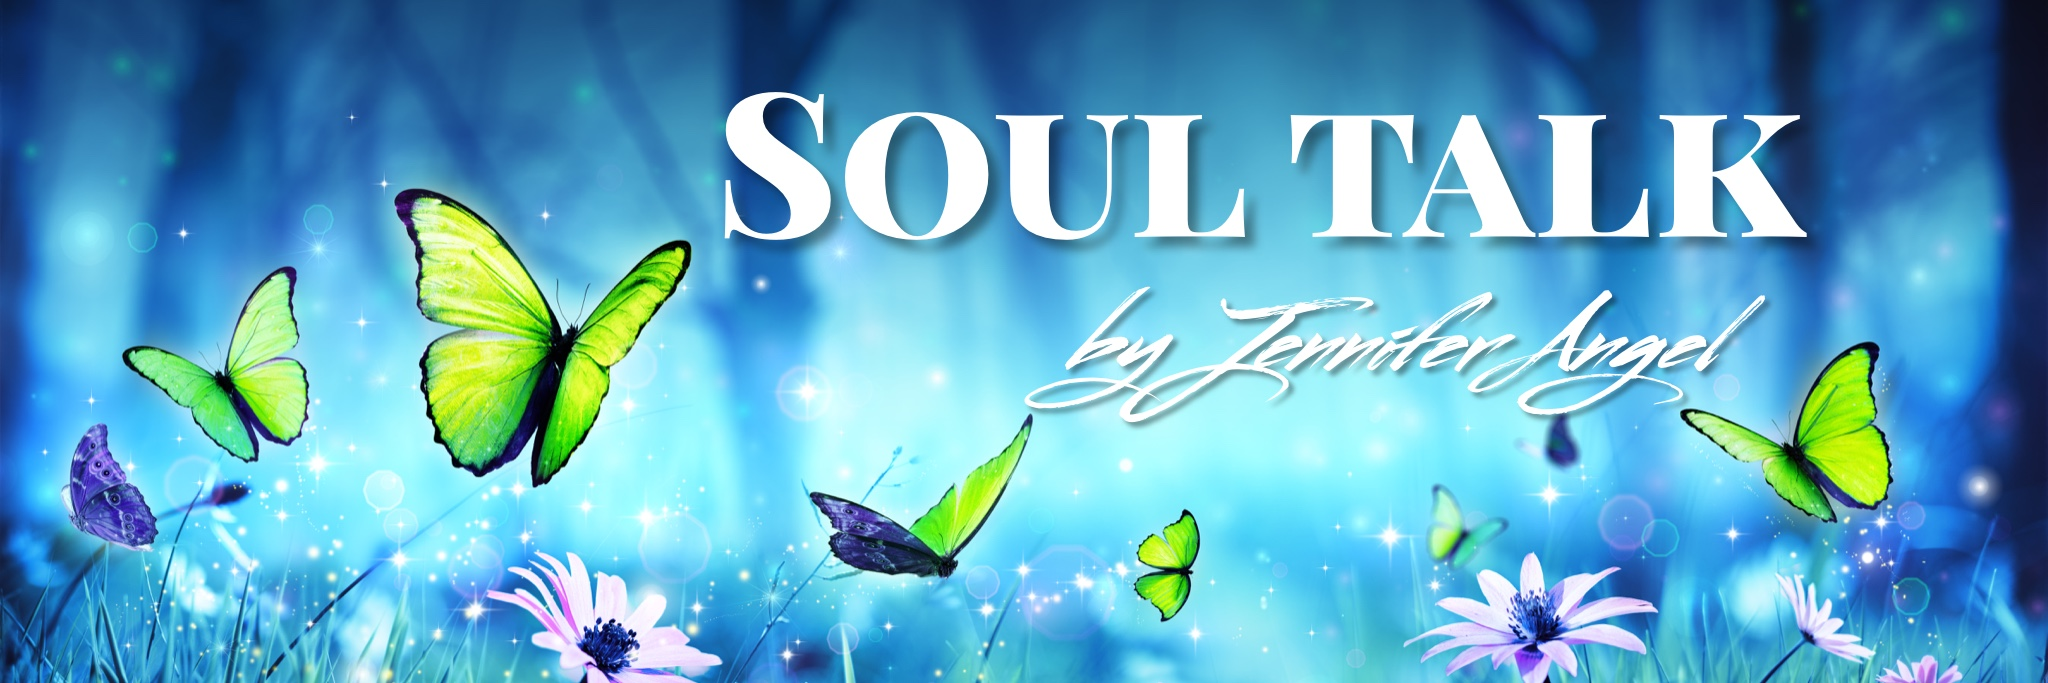 Jennifer Angel Soul Talk